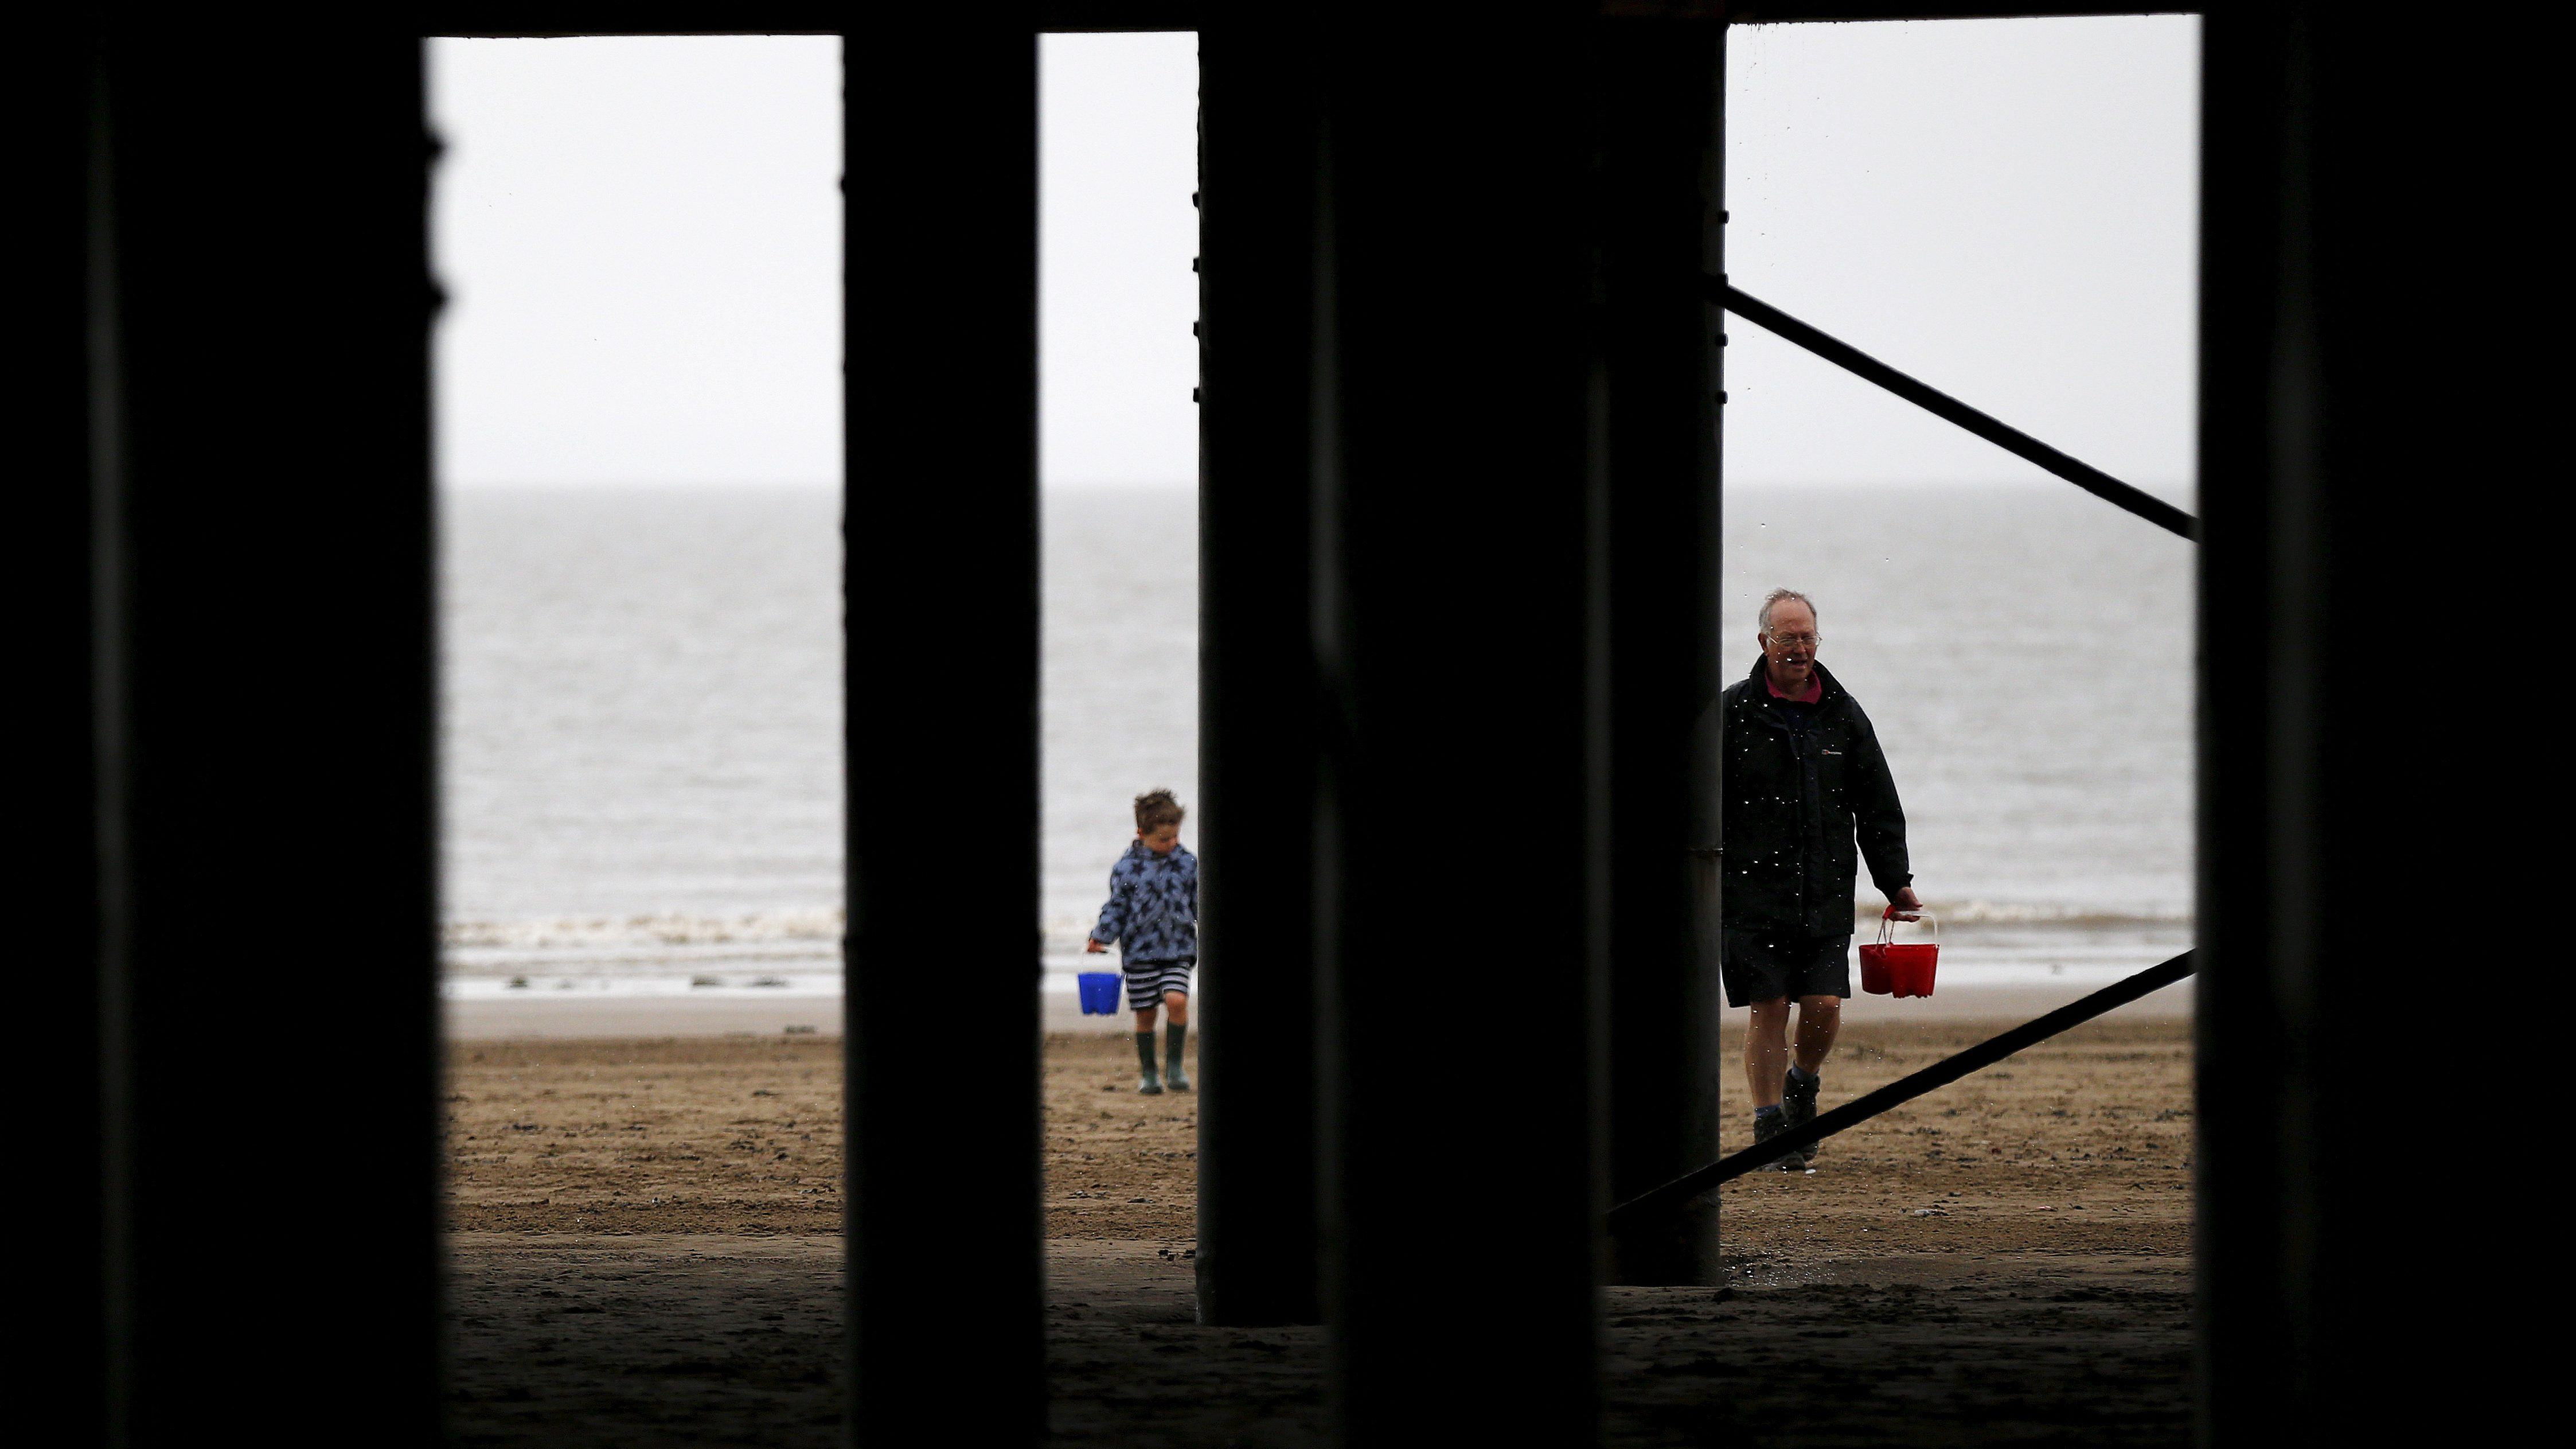 A man and a boy carry buckets of water to make sand castles underneath a boardwalk on the seaside in Weston-super-Mare